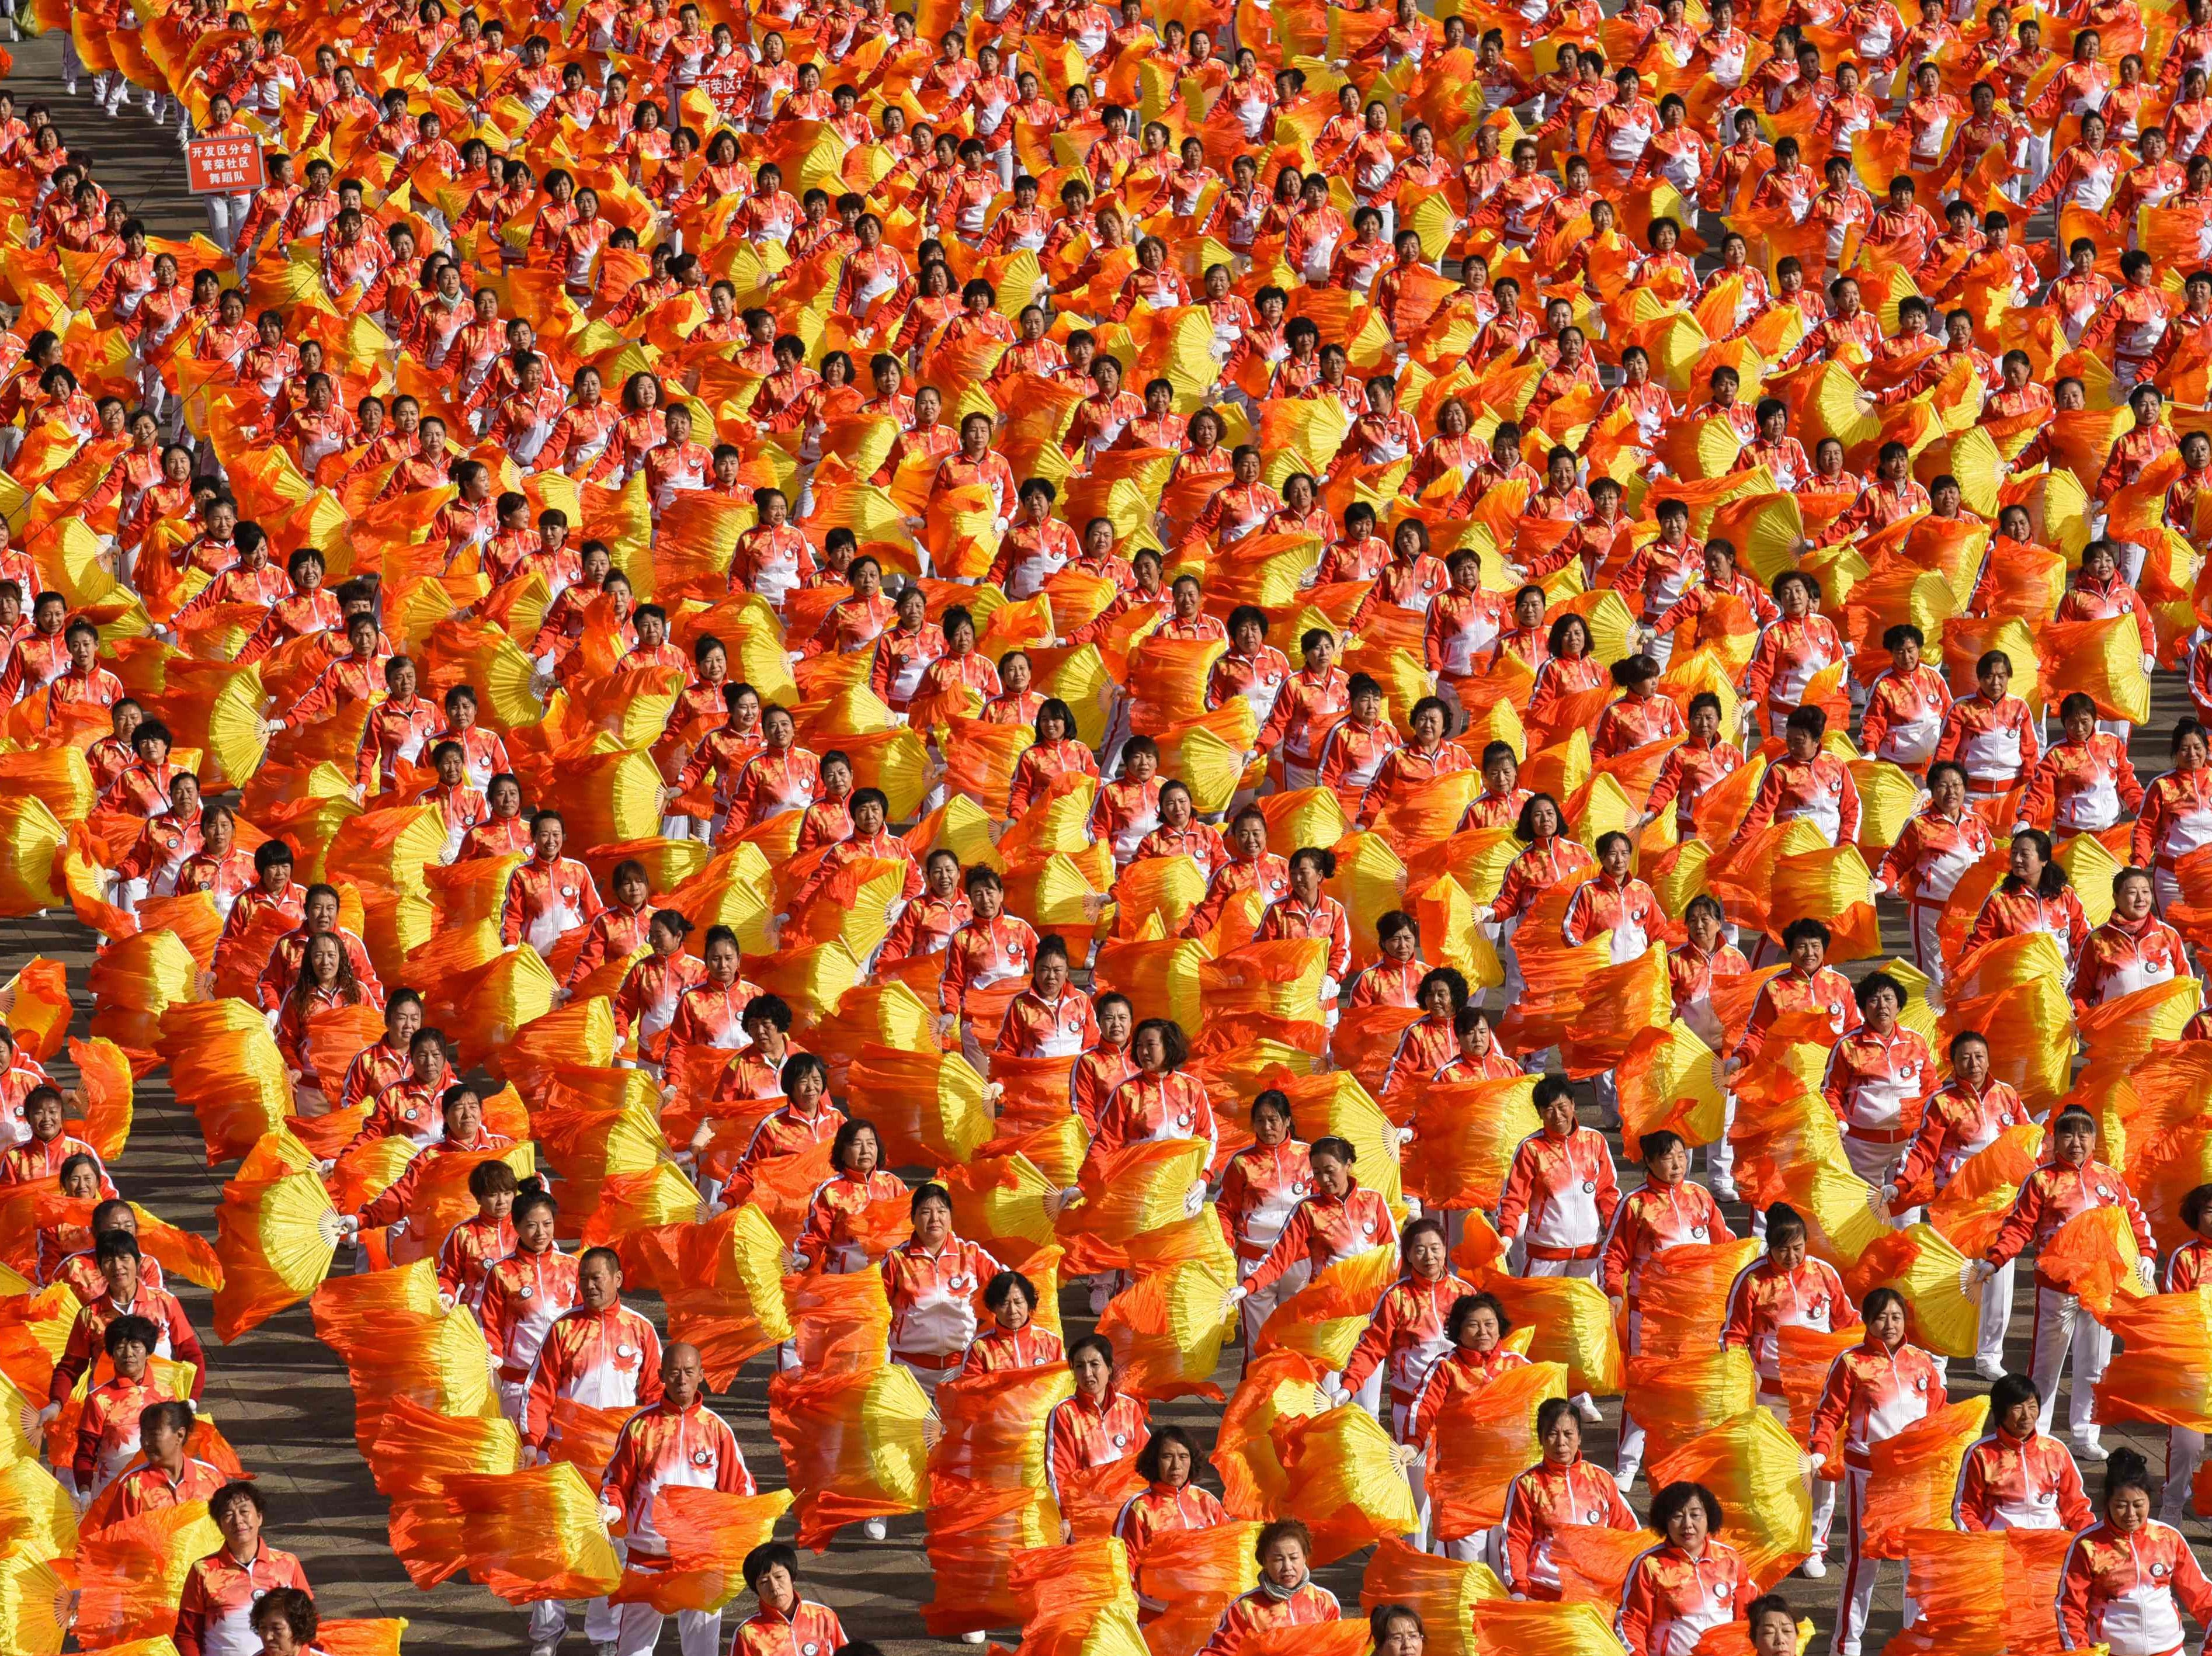 People take part in a mass dance event in Datong in China's northern Shanxi province on Oct. 9, 2018.  Some 20,000 dancers took part in the event.